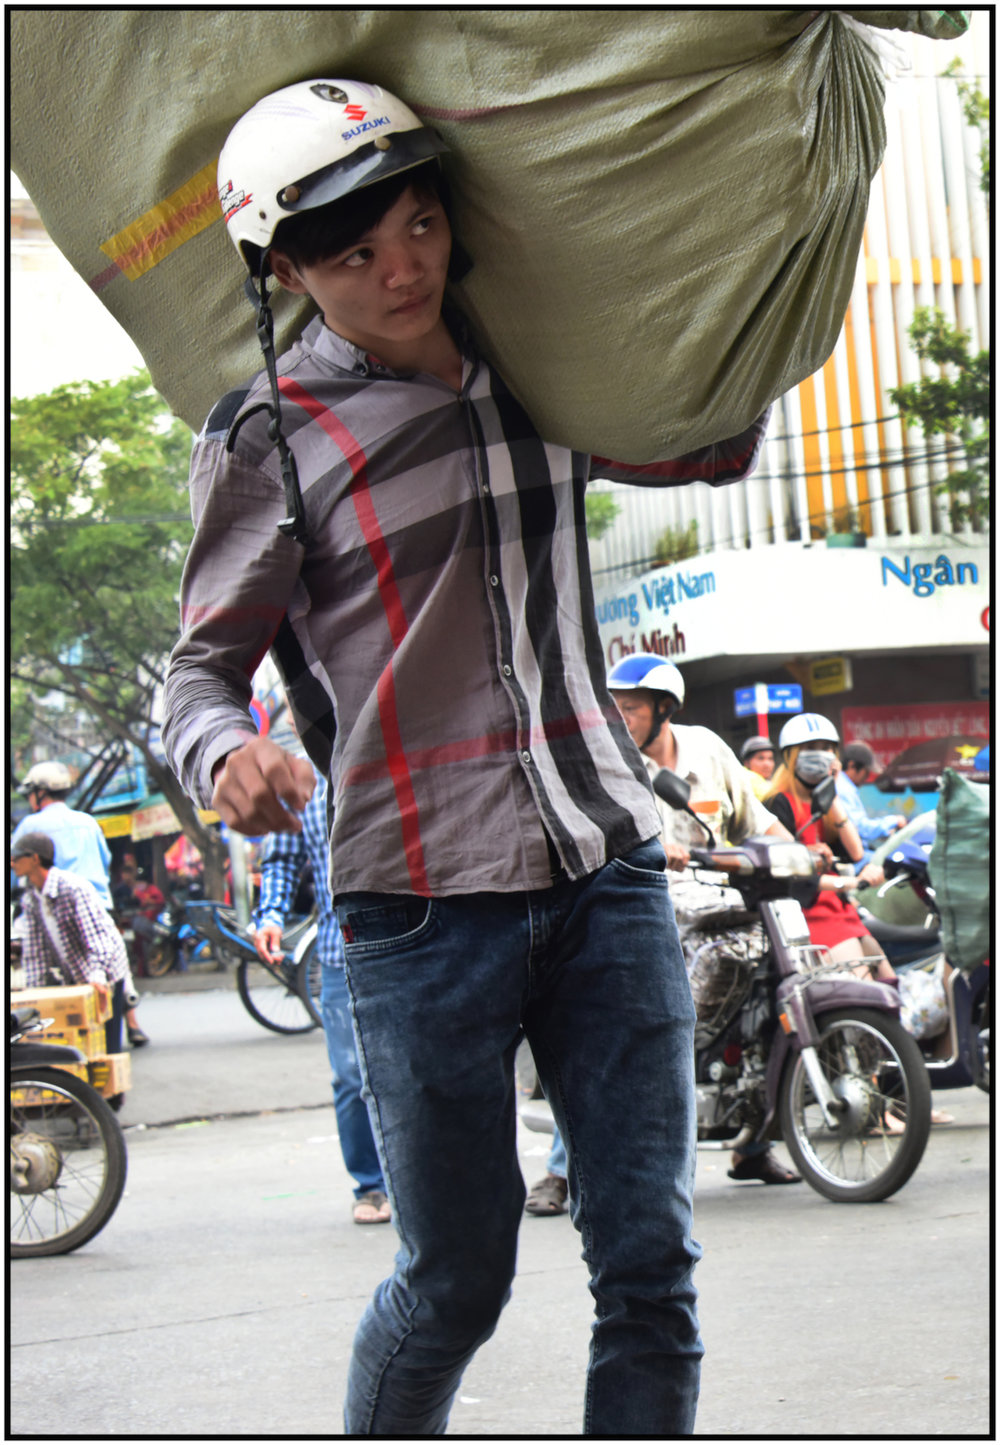 Worker carries merchandise from truck to Binh Tay Market, Cholon, Saigon/HCMC, Dec. 2015. #4147